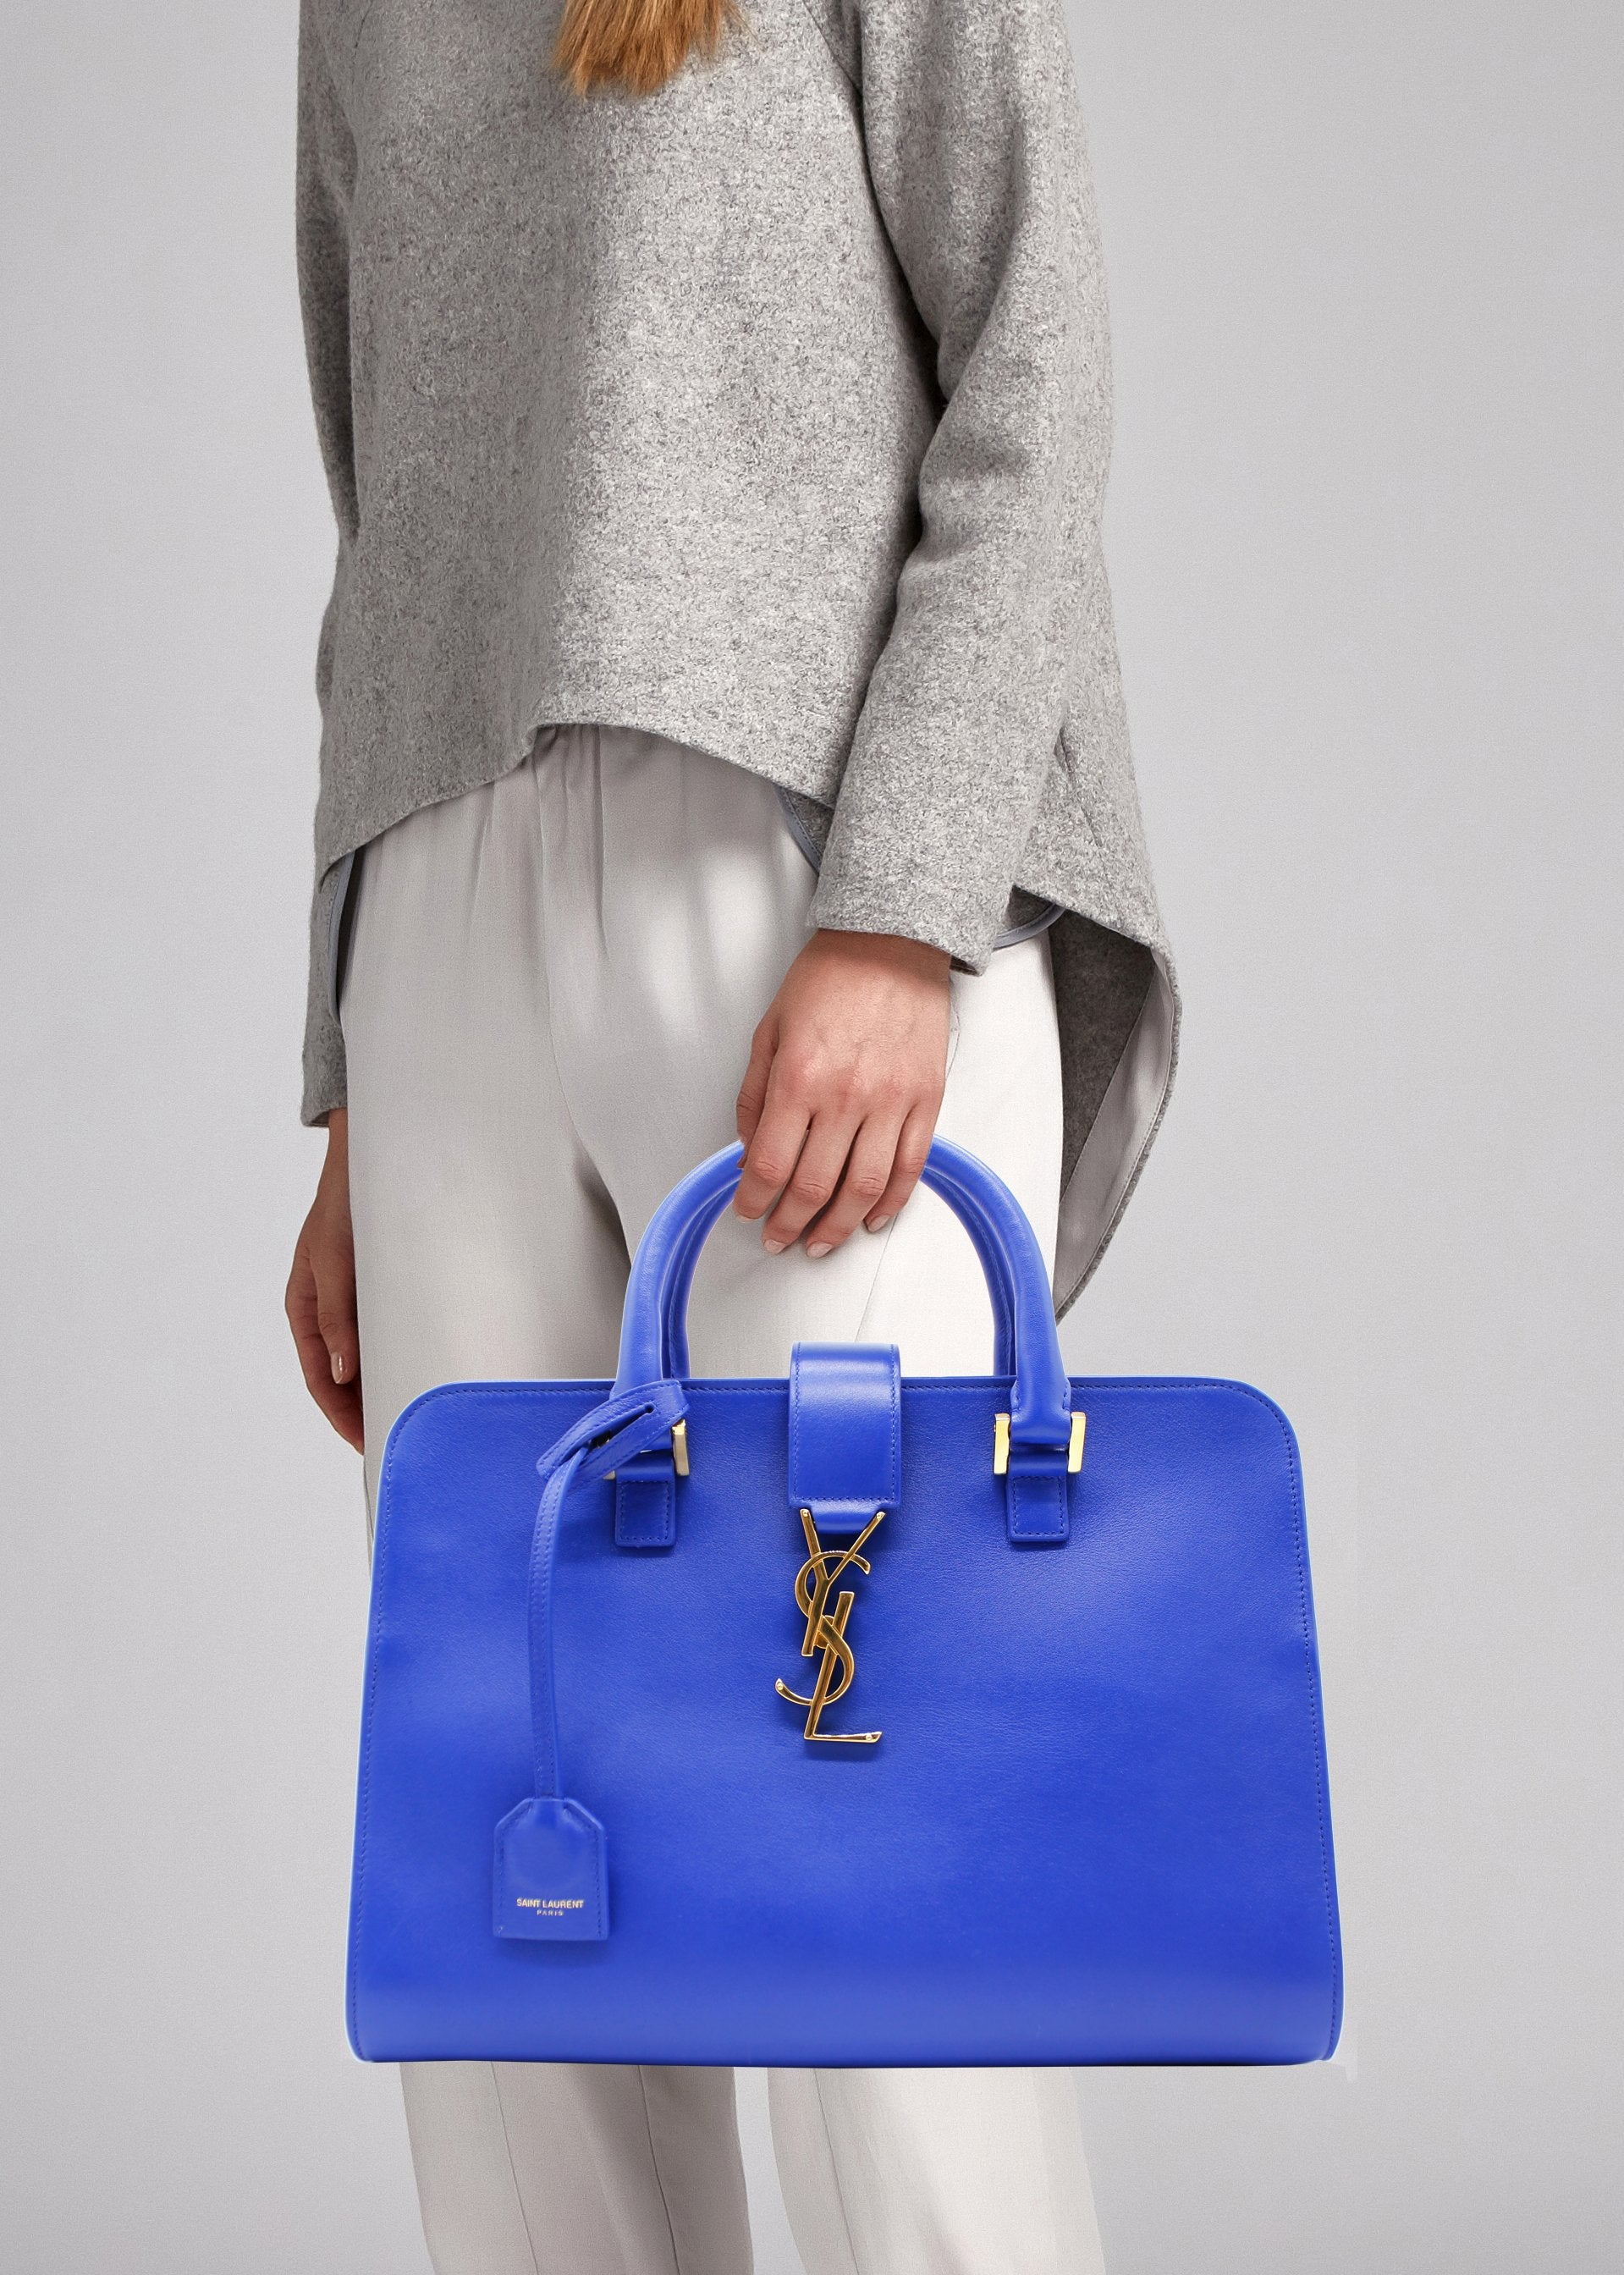 Flowers in Chania